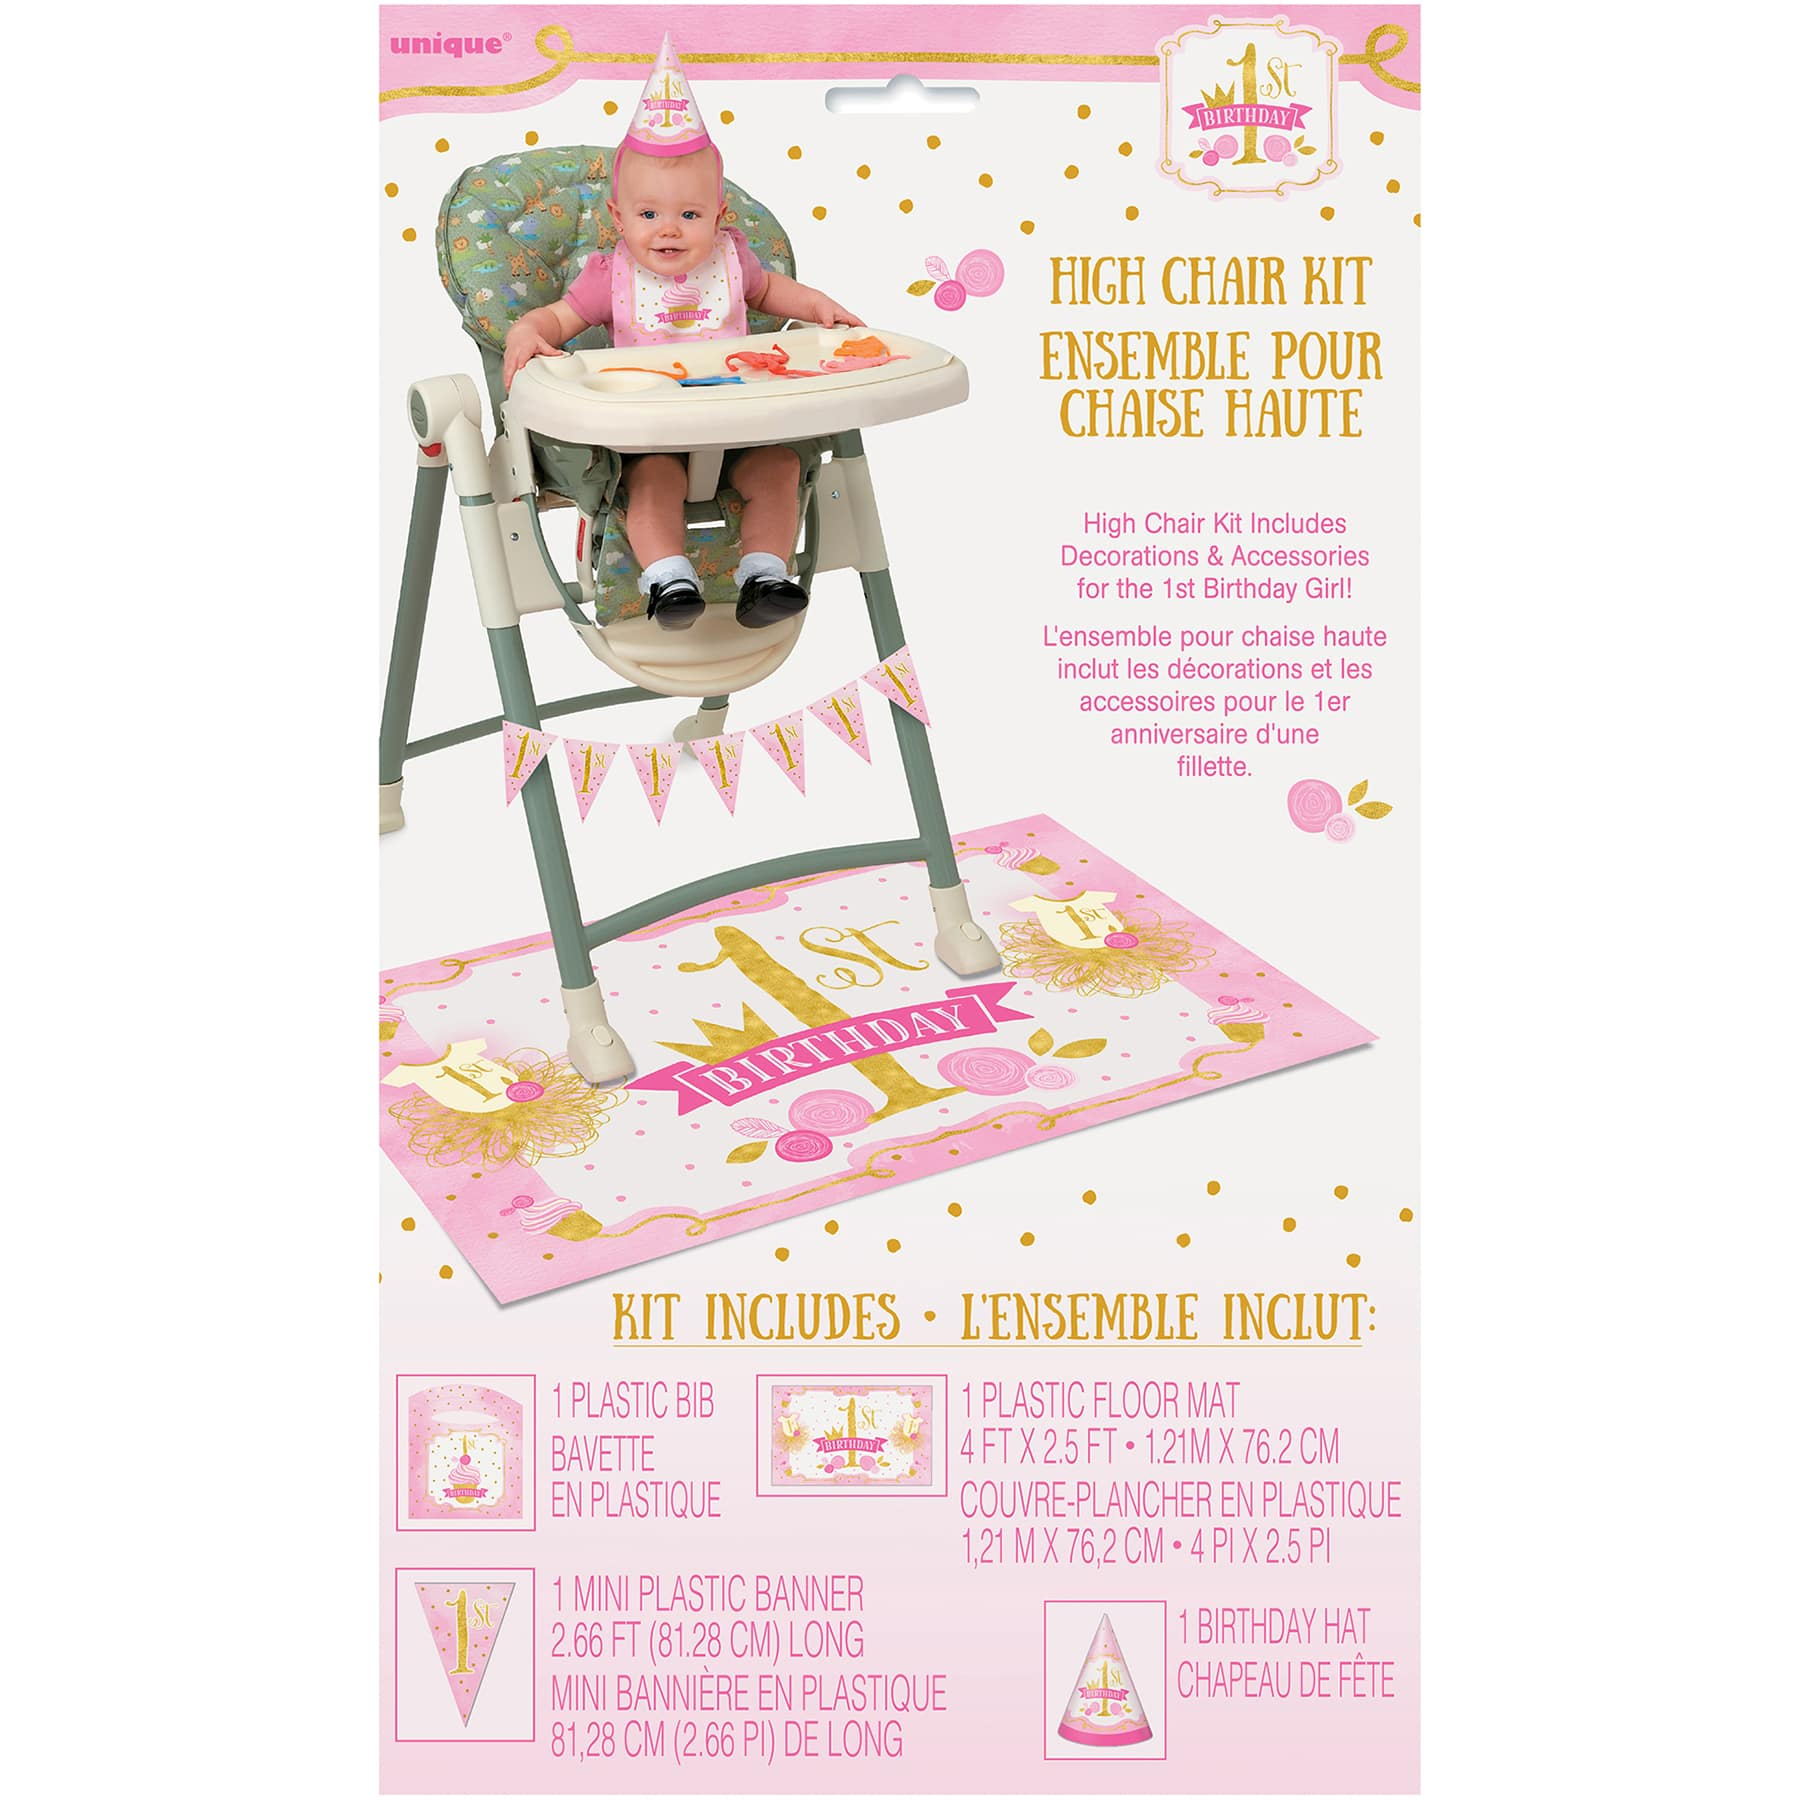 Pink And Gold 1st Birthday High Chair Decoration Kit Girl 1st Birthday Party Decorations